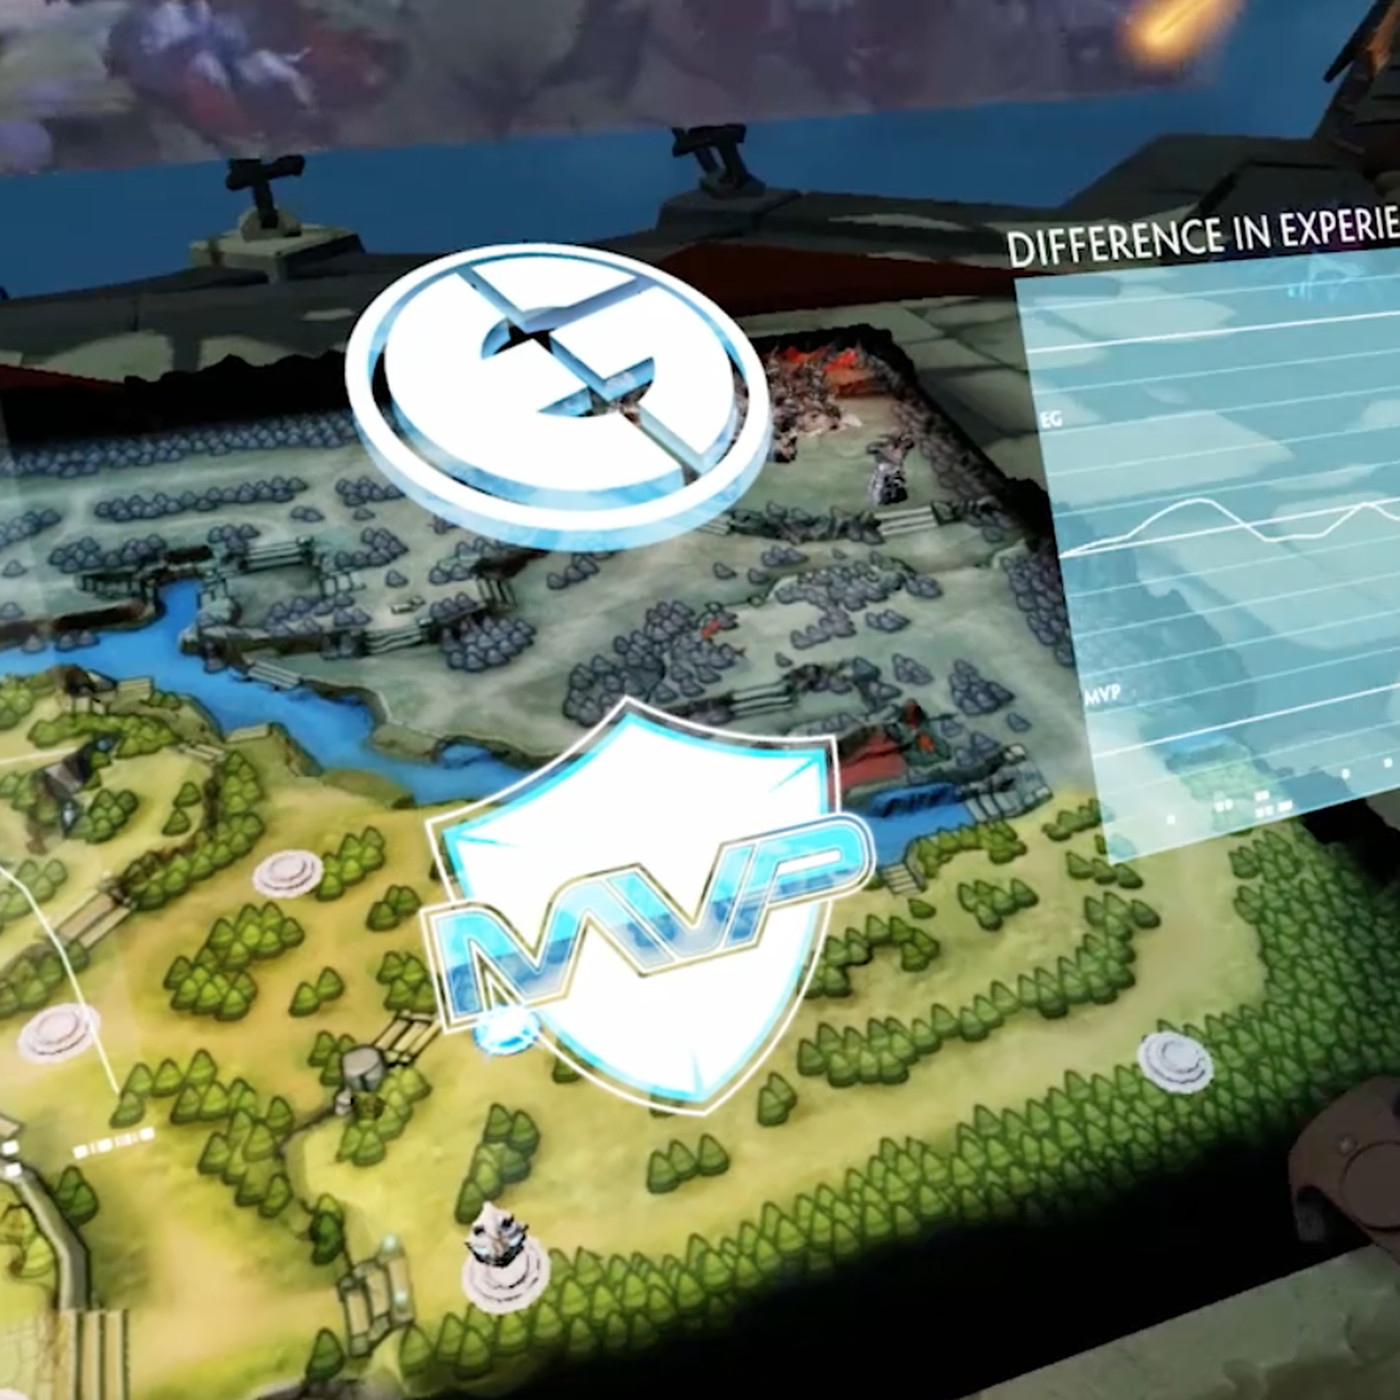 Valve will let you watch Dota 2 games in virtual reality